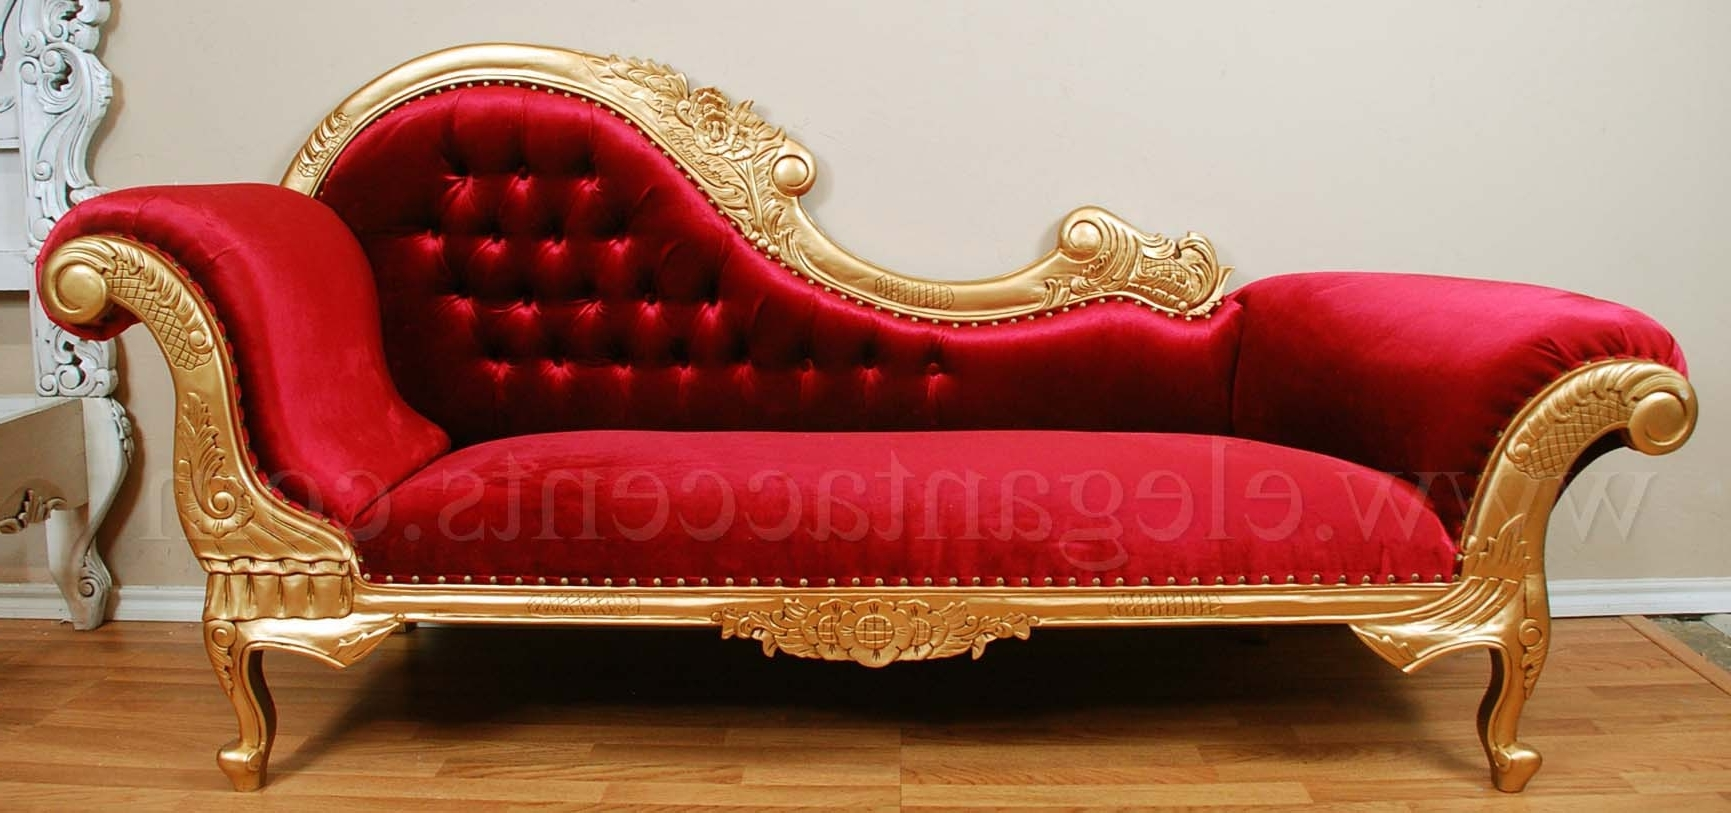 Red Chaises For Preferred Depositphotos Stock Photo Red Chaise Lounge Over White – Surripui (View 9 of 15)